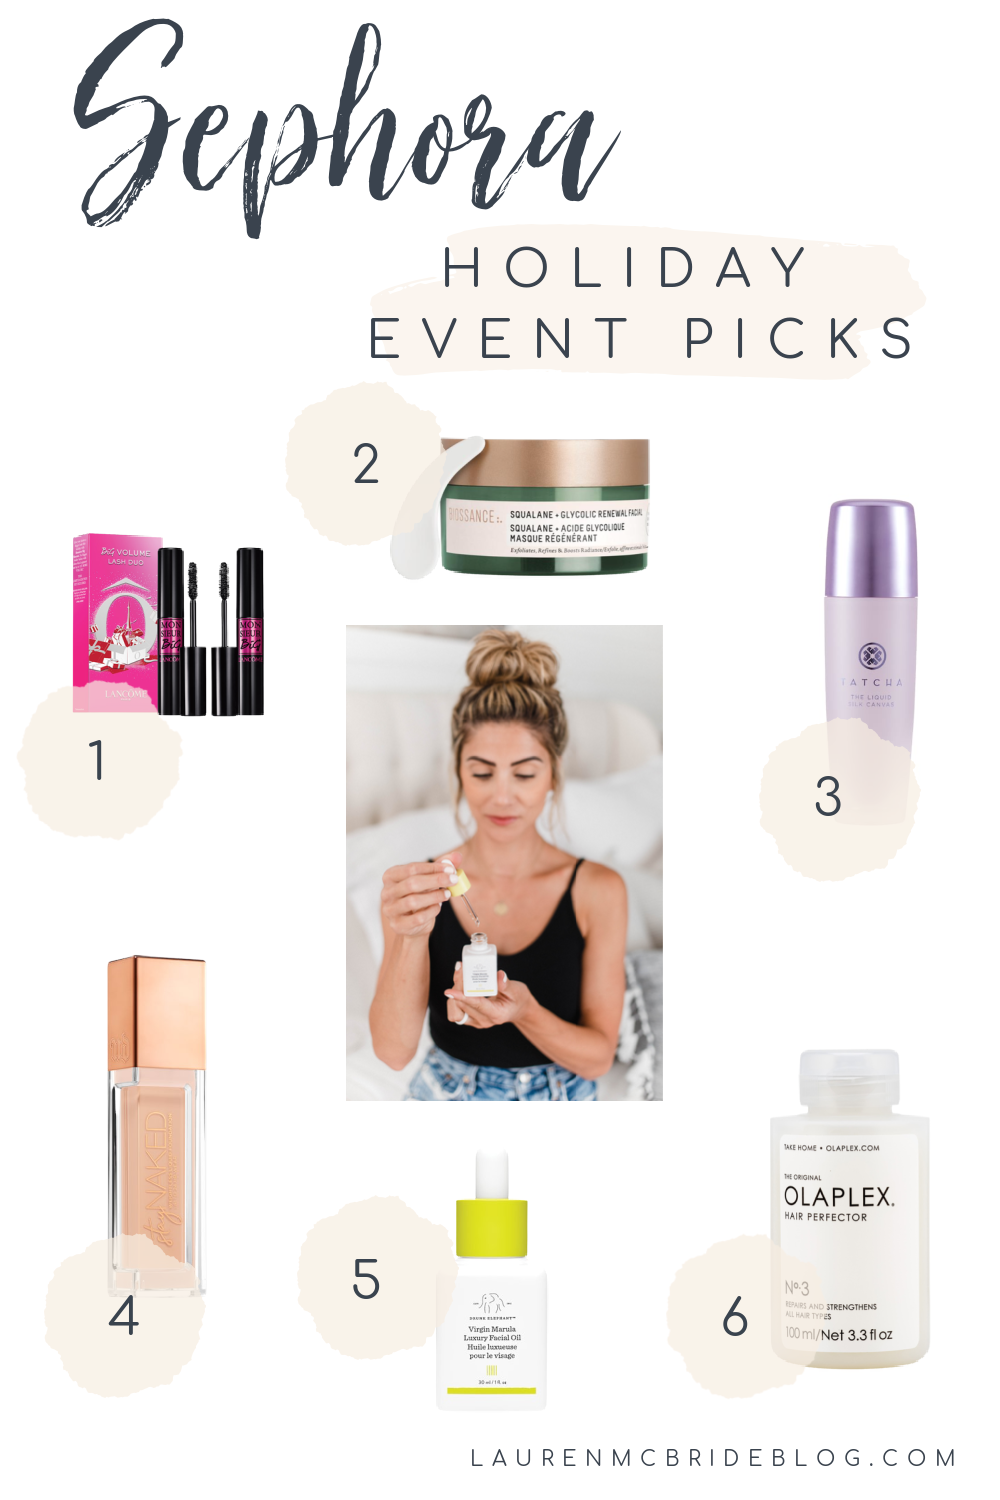 Connecticut life and style blogger Lauren McBride shares her Sephora Holiday Savings Event picks for Beauty Insiders.